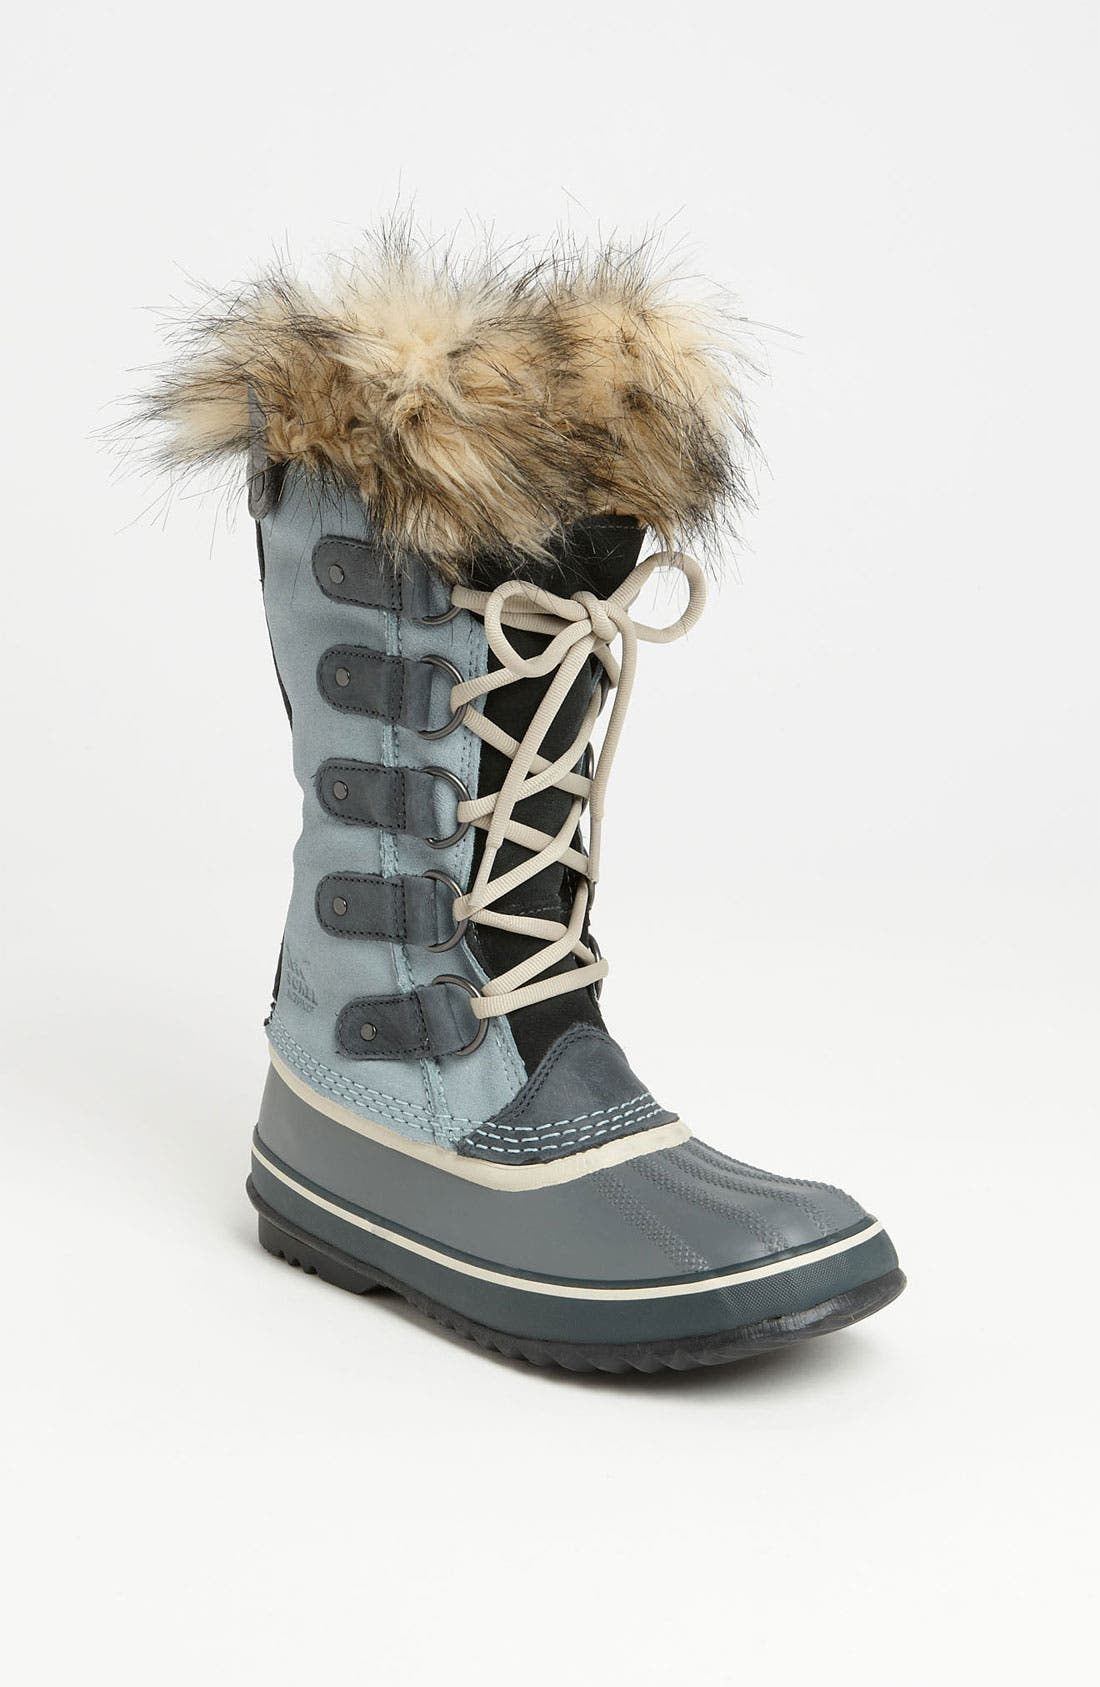 Alternate Image 1 Selected - SOREL 'Joan of Arctic' Waterproof Snow Boot